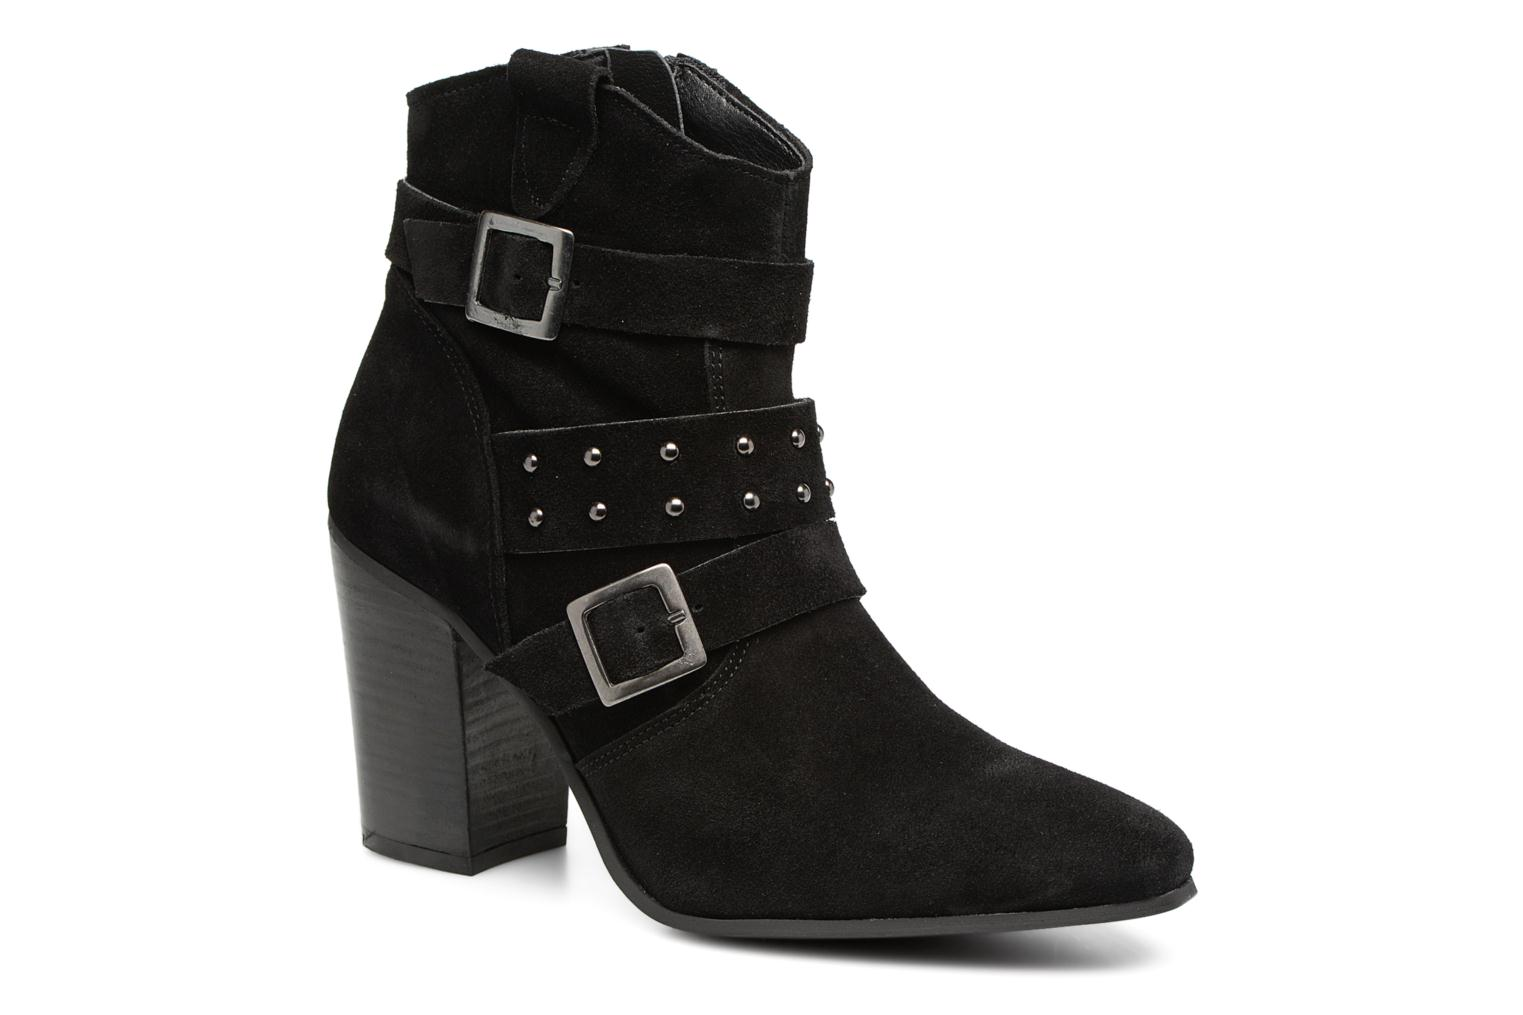 Vero Moda Sille Leather Boot